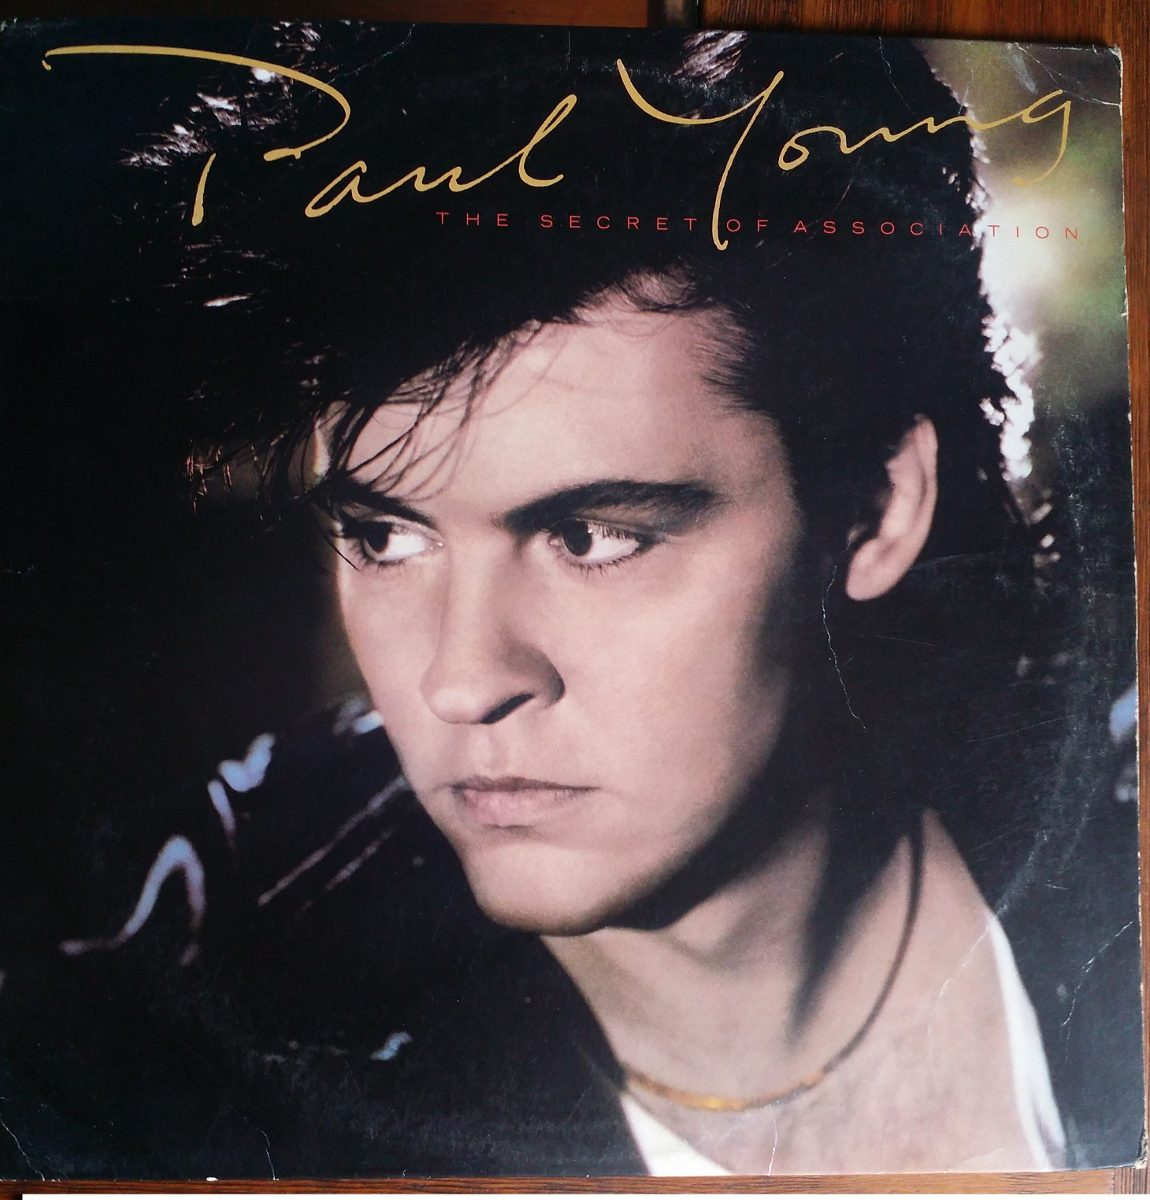 Paul Young – Everytime You Go Away - Song Meanings and Facts